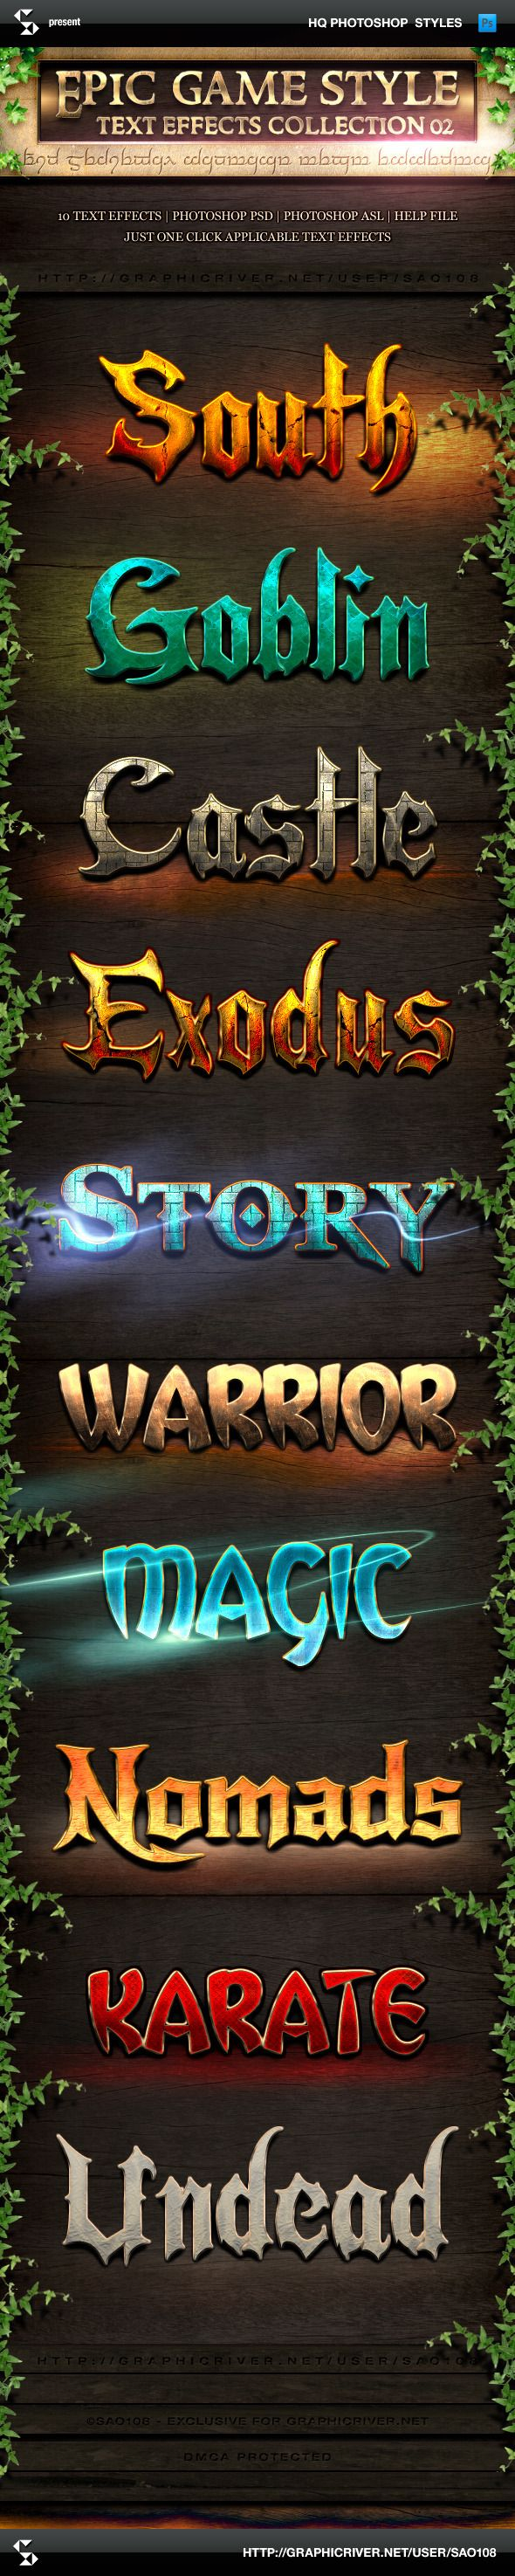 Epic Game Style Text Effects - Collection 2 (photoshop layer styles, just one click applicable text effects)